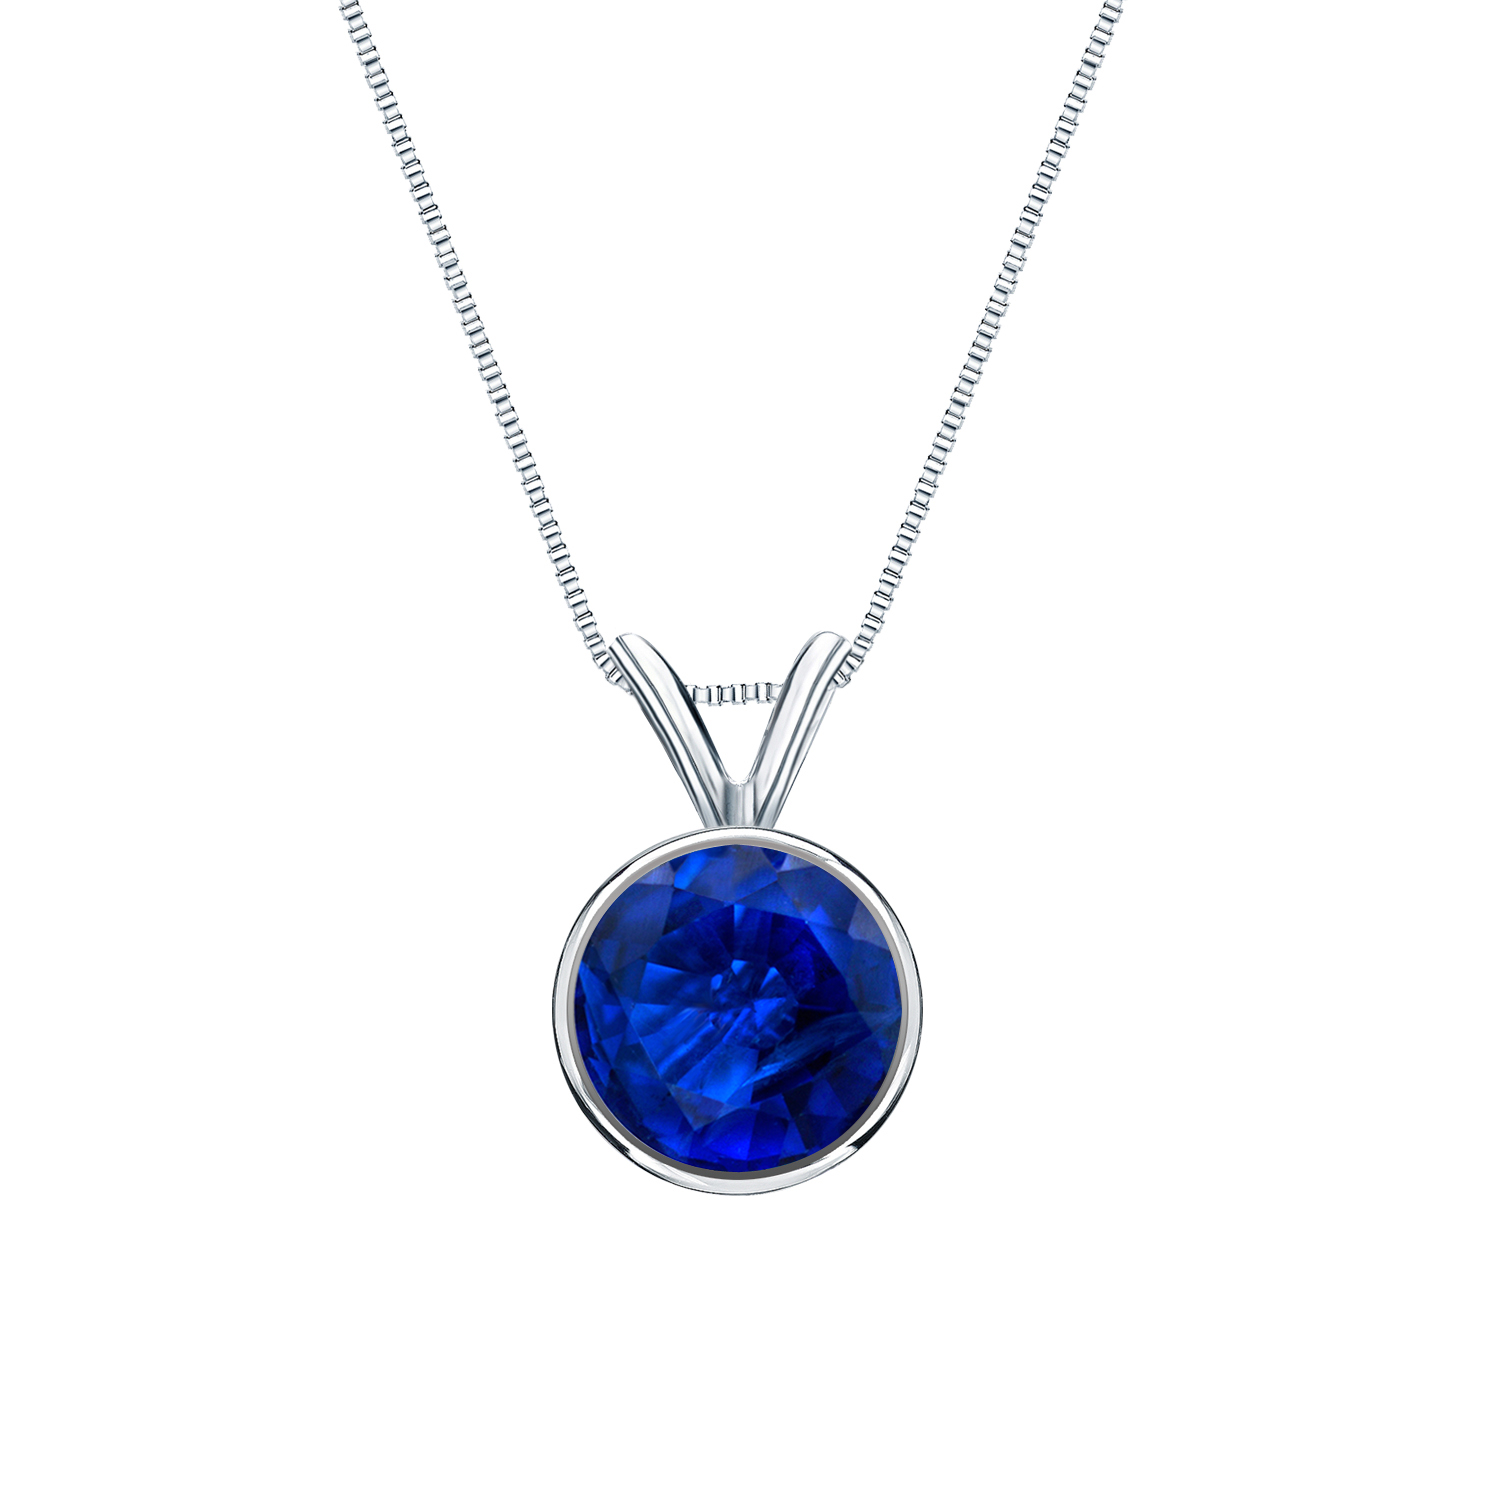 Certified 0.50 ct. tw. Round Blue Sapphire Gemstone Solitaire Pendant in 14k White Gold Bezel (Blue, AAA)